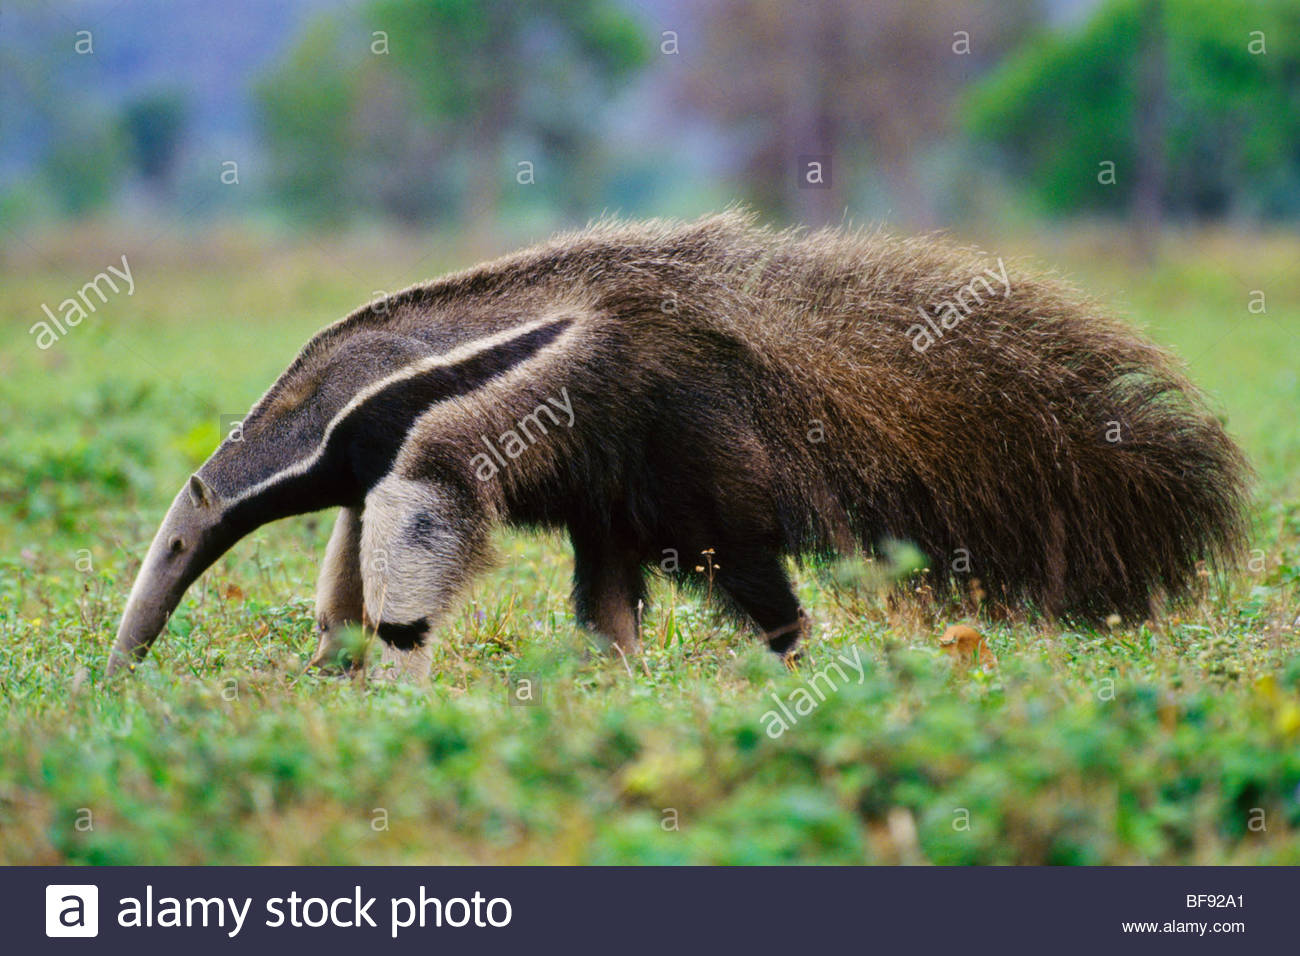 Giant anteater searching for termites, Myrmecophaga tridactyla, Pantanal, Brazil Stock Photo